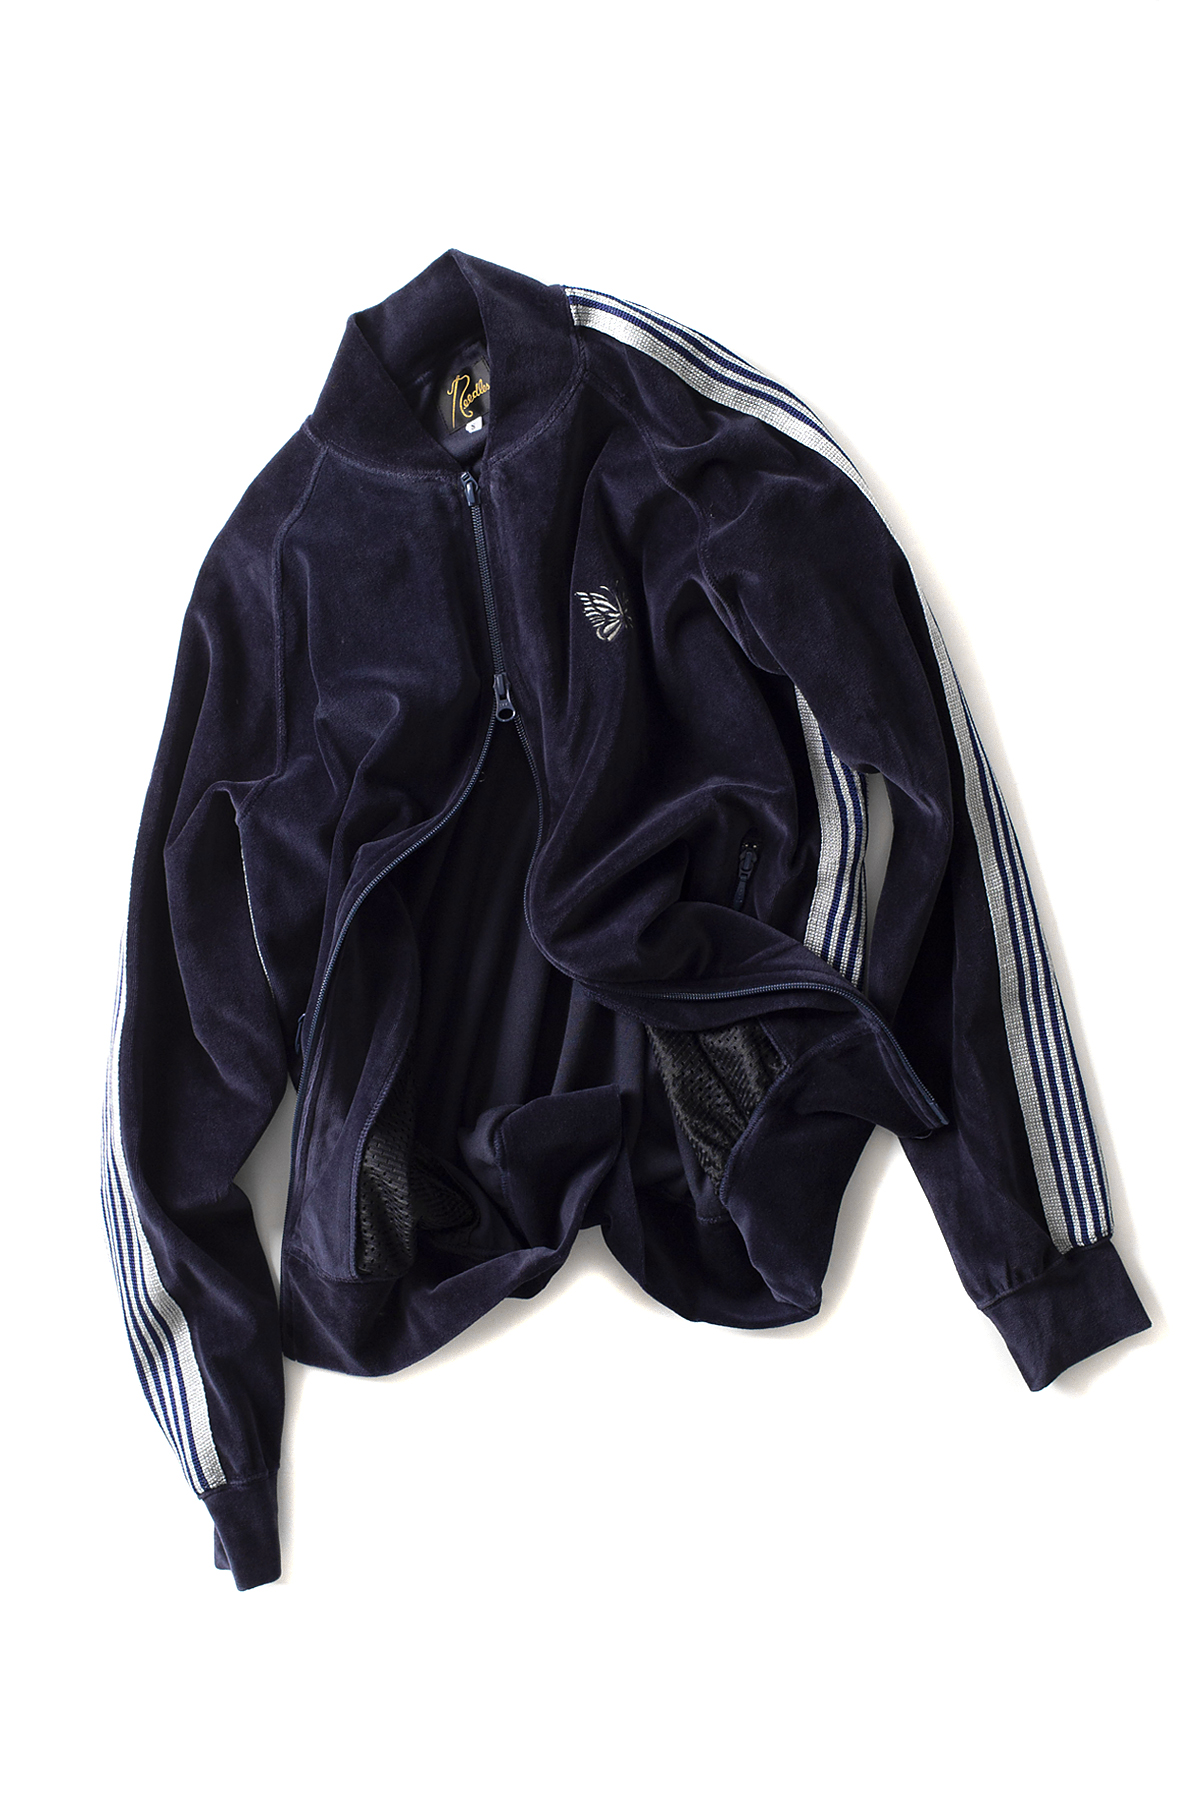 NEEDLES : Velour Rib Collar Track Jacket (Navy)